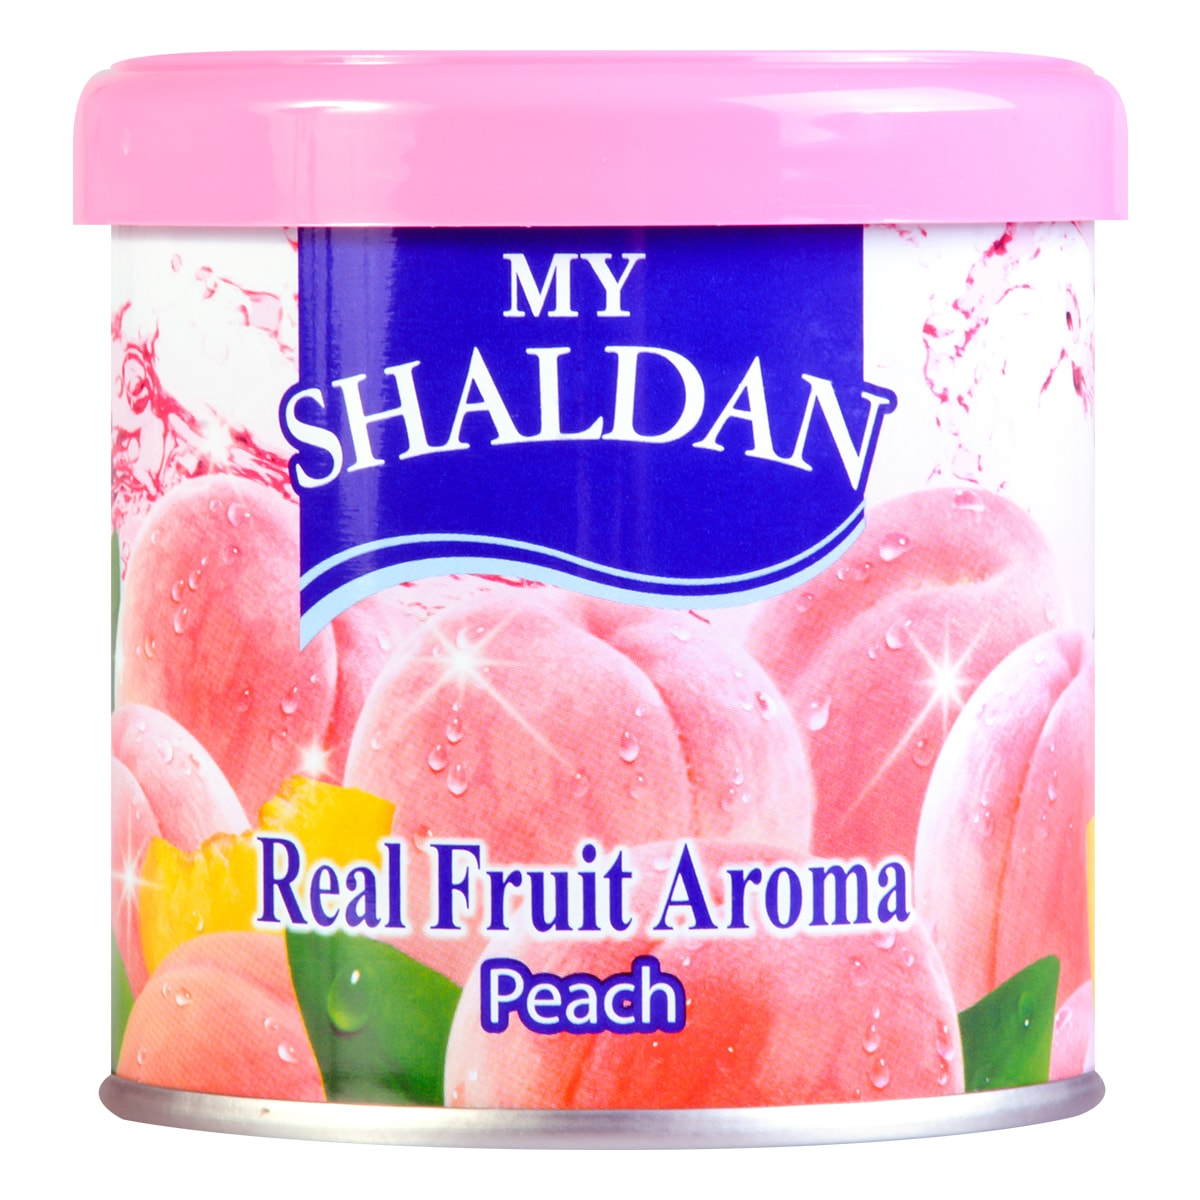 MY SHALDAN Real Fruit Aroma Air Freshener Peach 80g